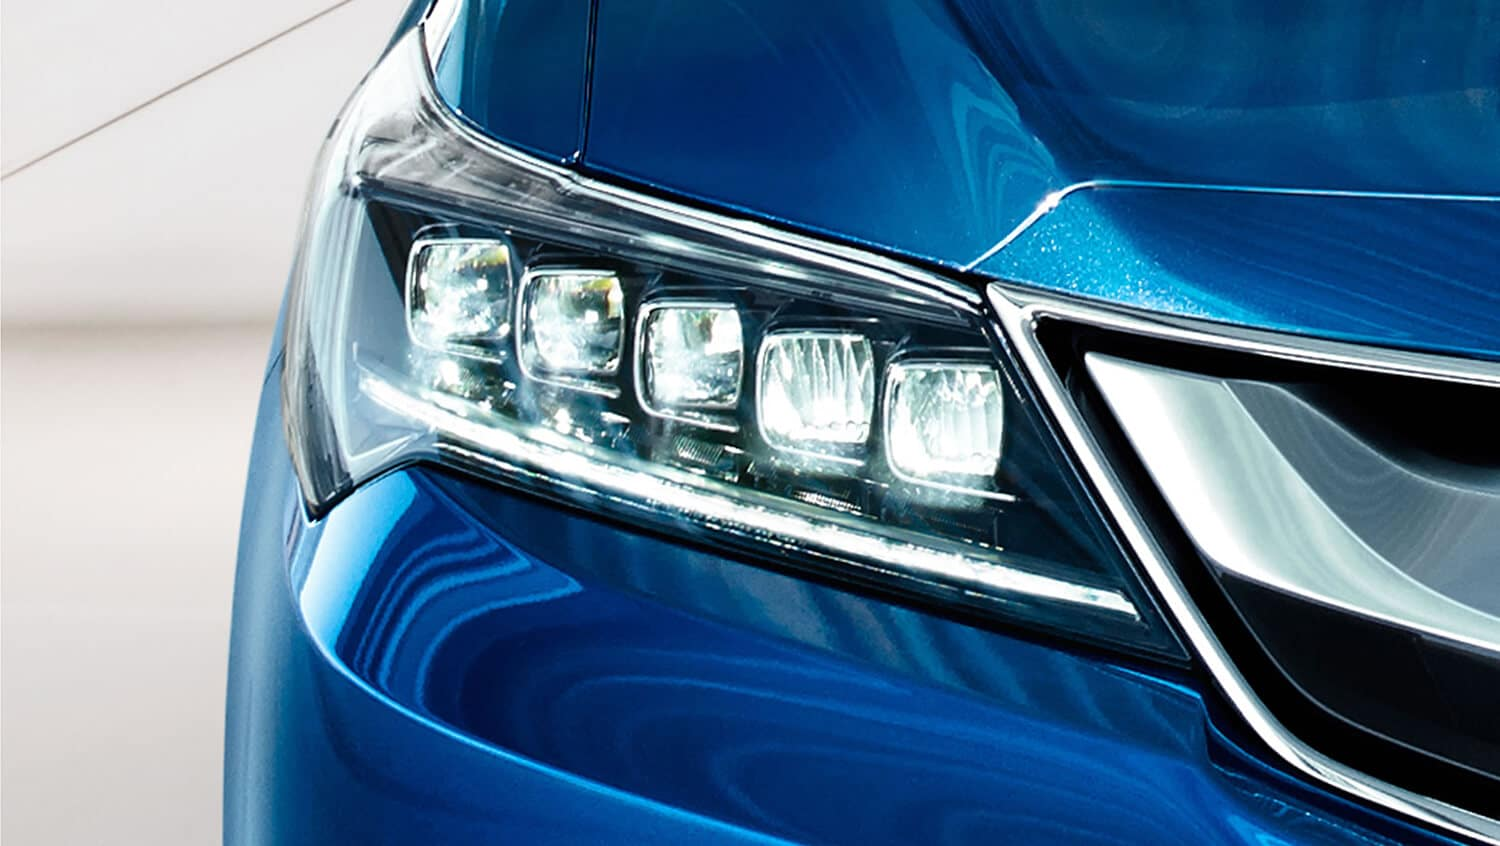 2018 Acura ILX Exterior Jewel Eye LED Headlights